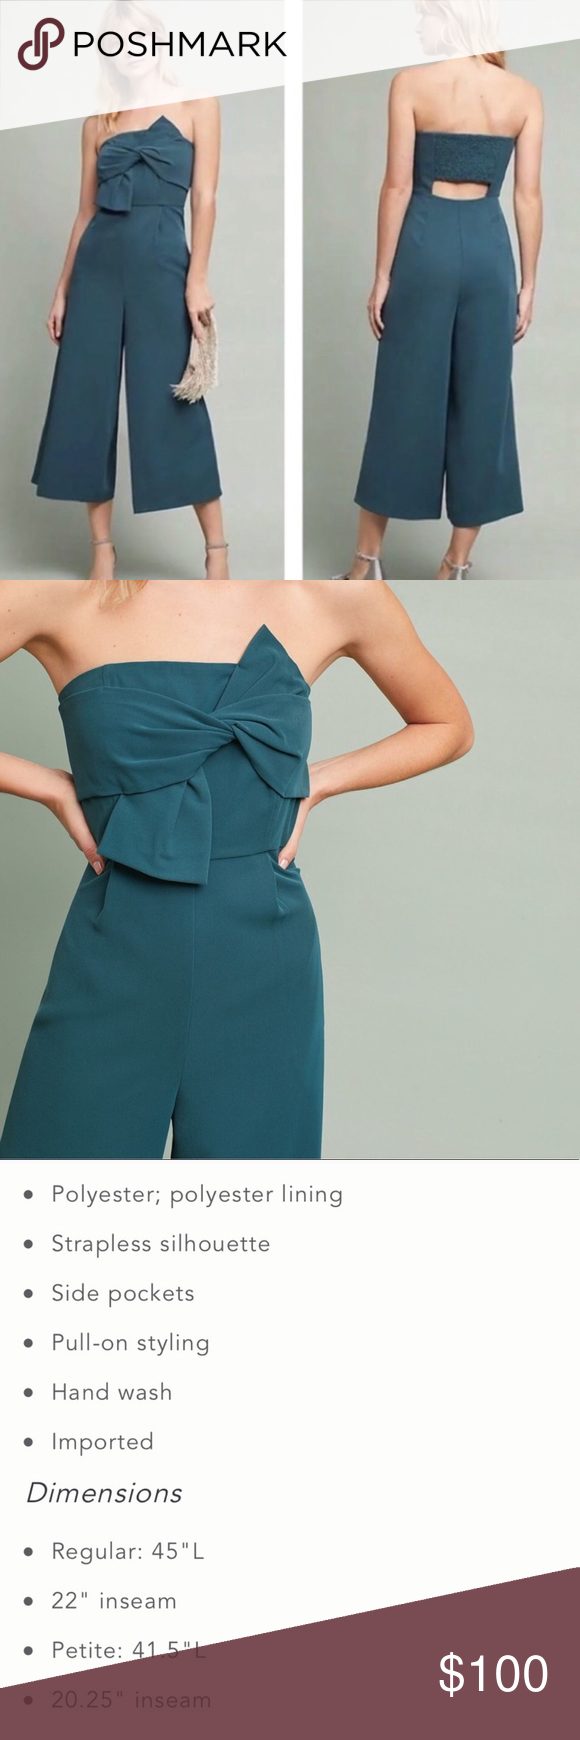 9f134289e3a5 Anthropologie Hailee C Beatty Strapless Jumpsuit Size 0 New without tags Anthropologie  Pants Jumpsuits   Rompers